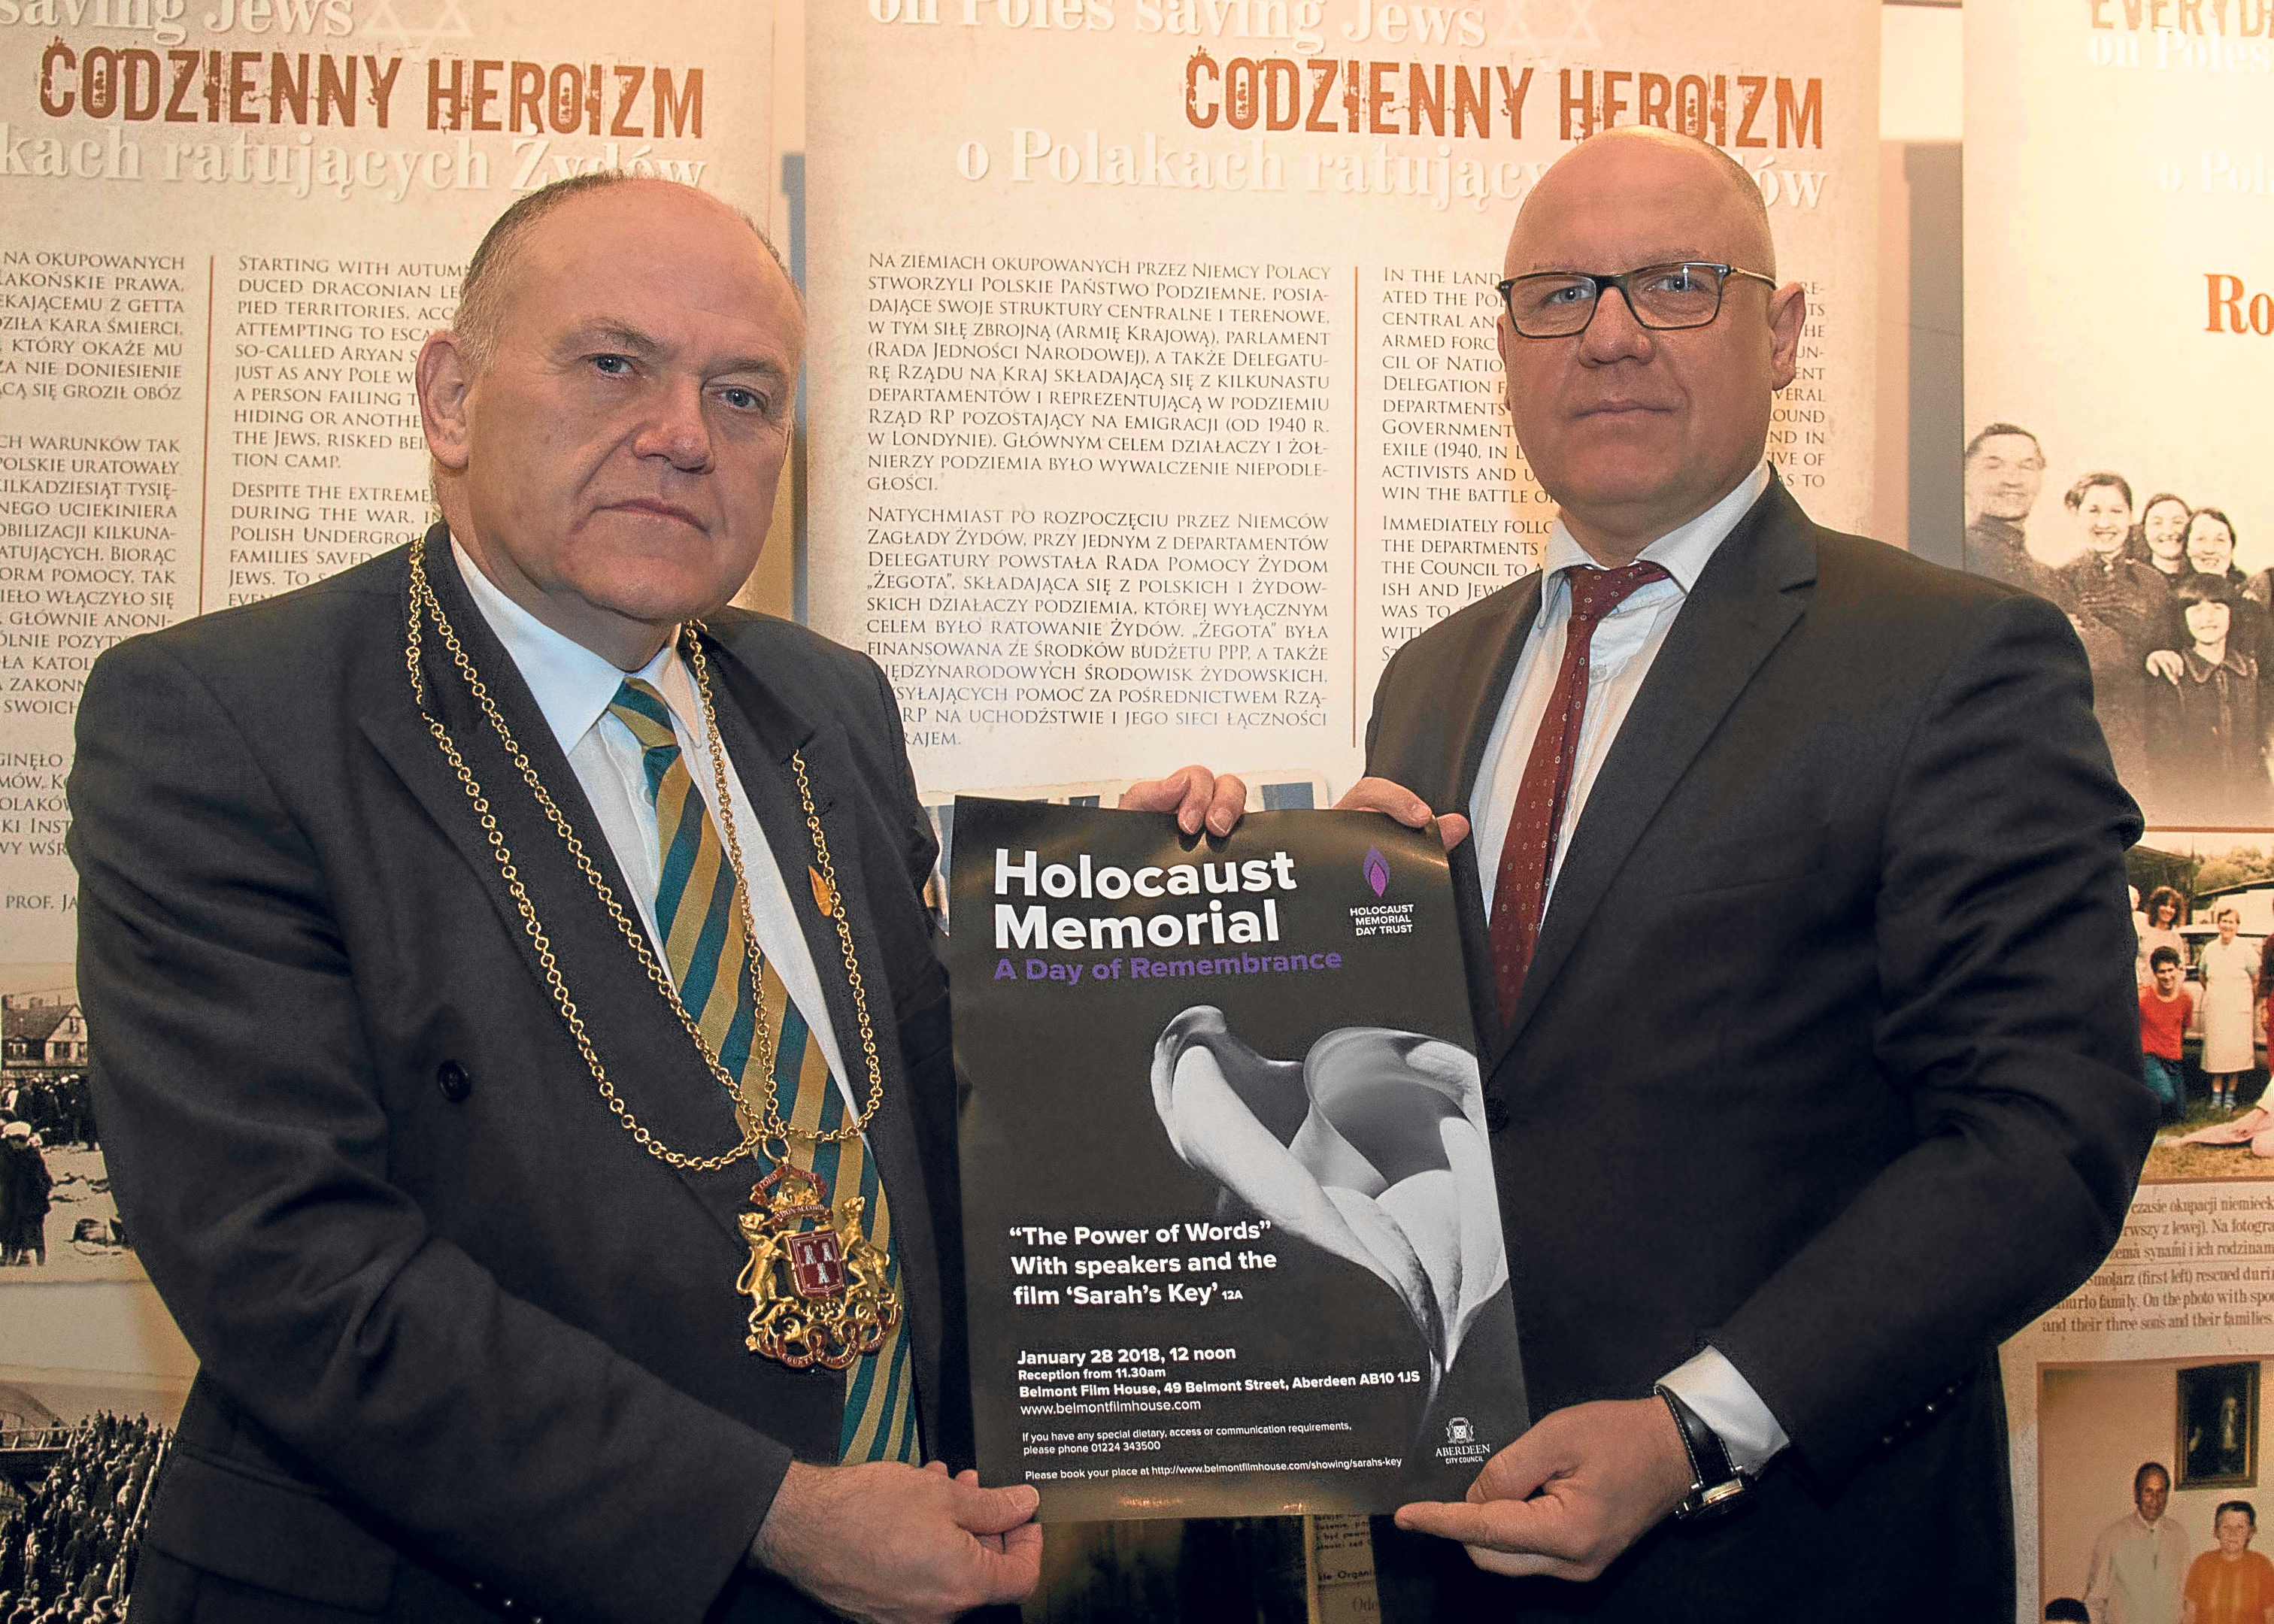 Lord Provost of Aberdeen Barney Crockett with Ireneusz Truszkowski, Consul General of the Republic of Poland.